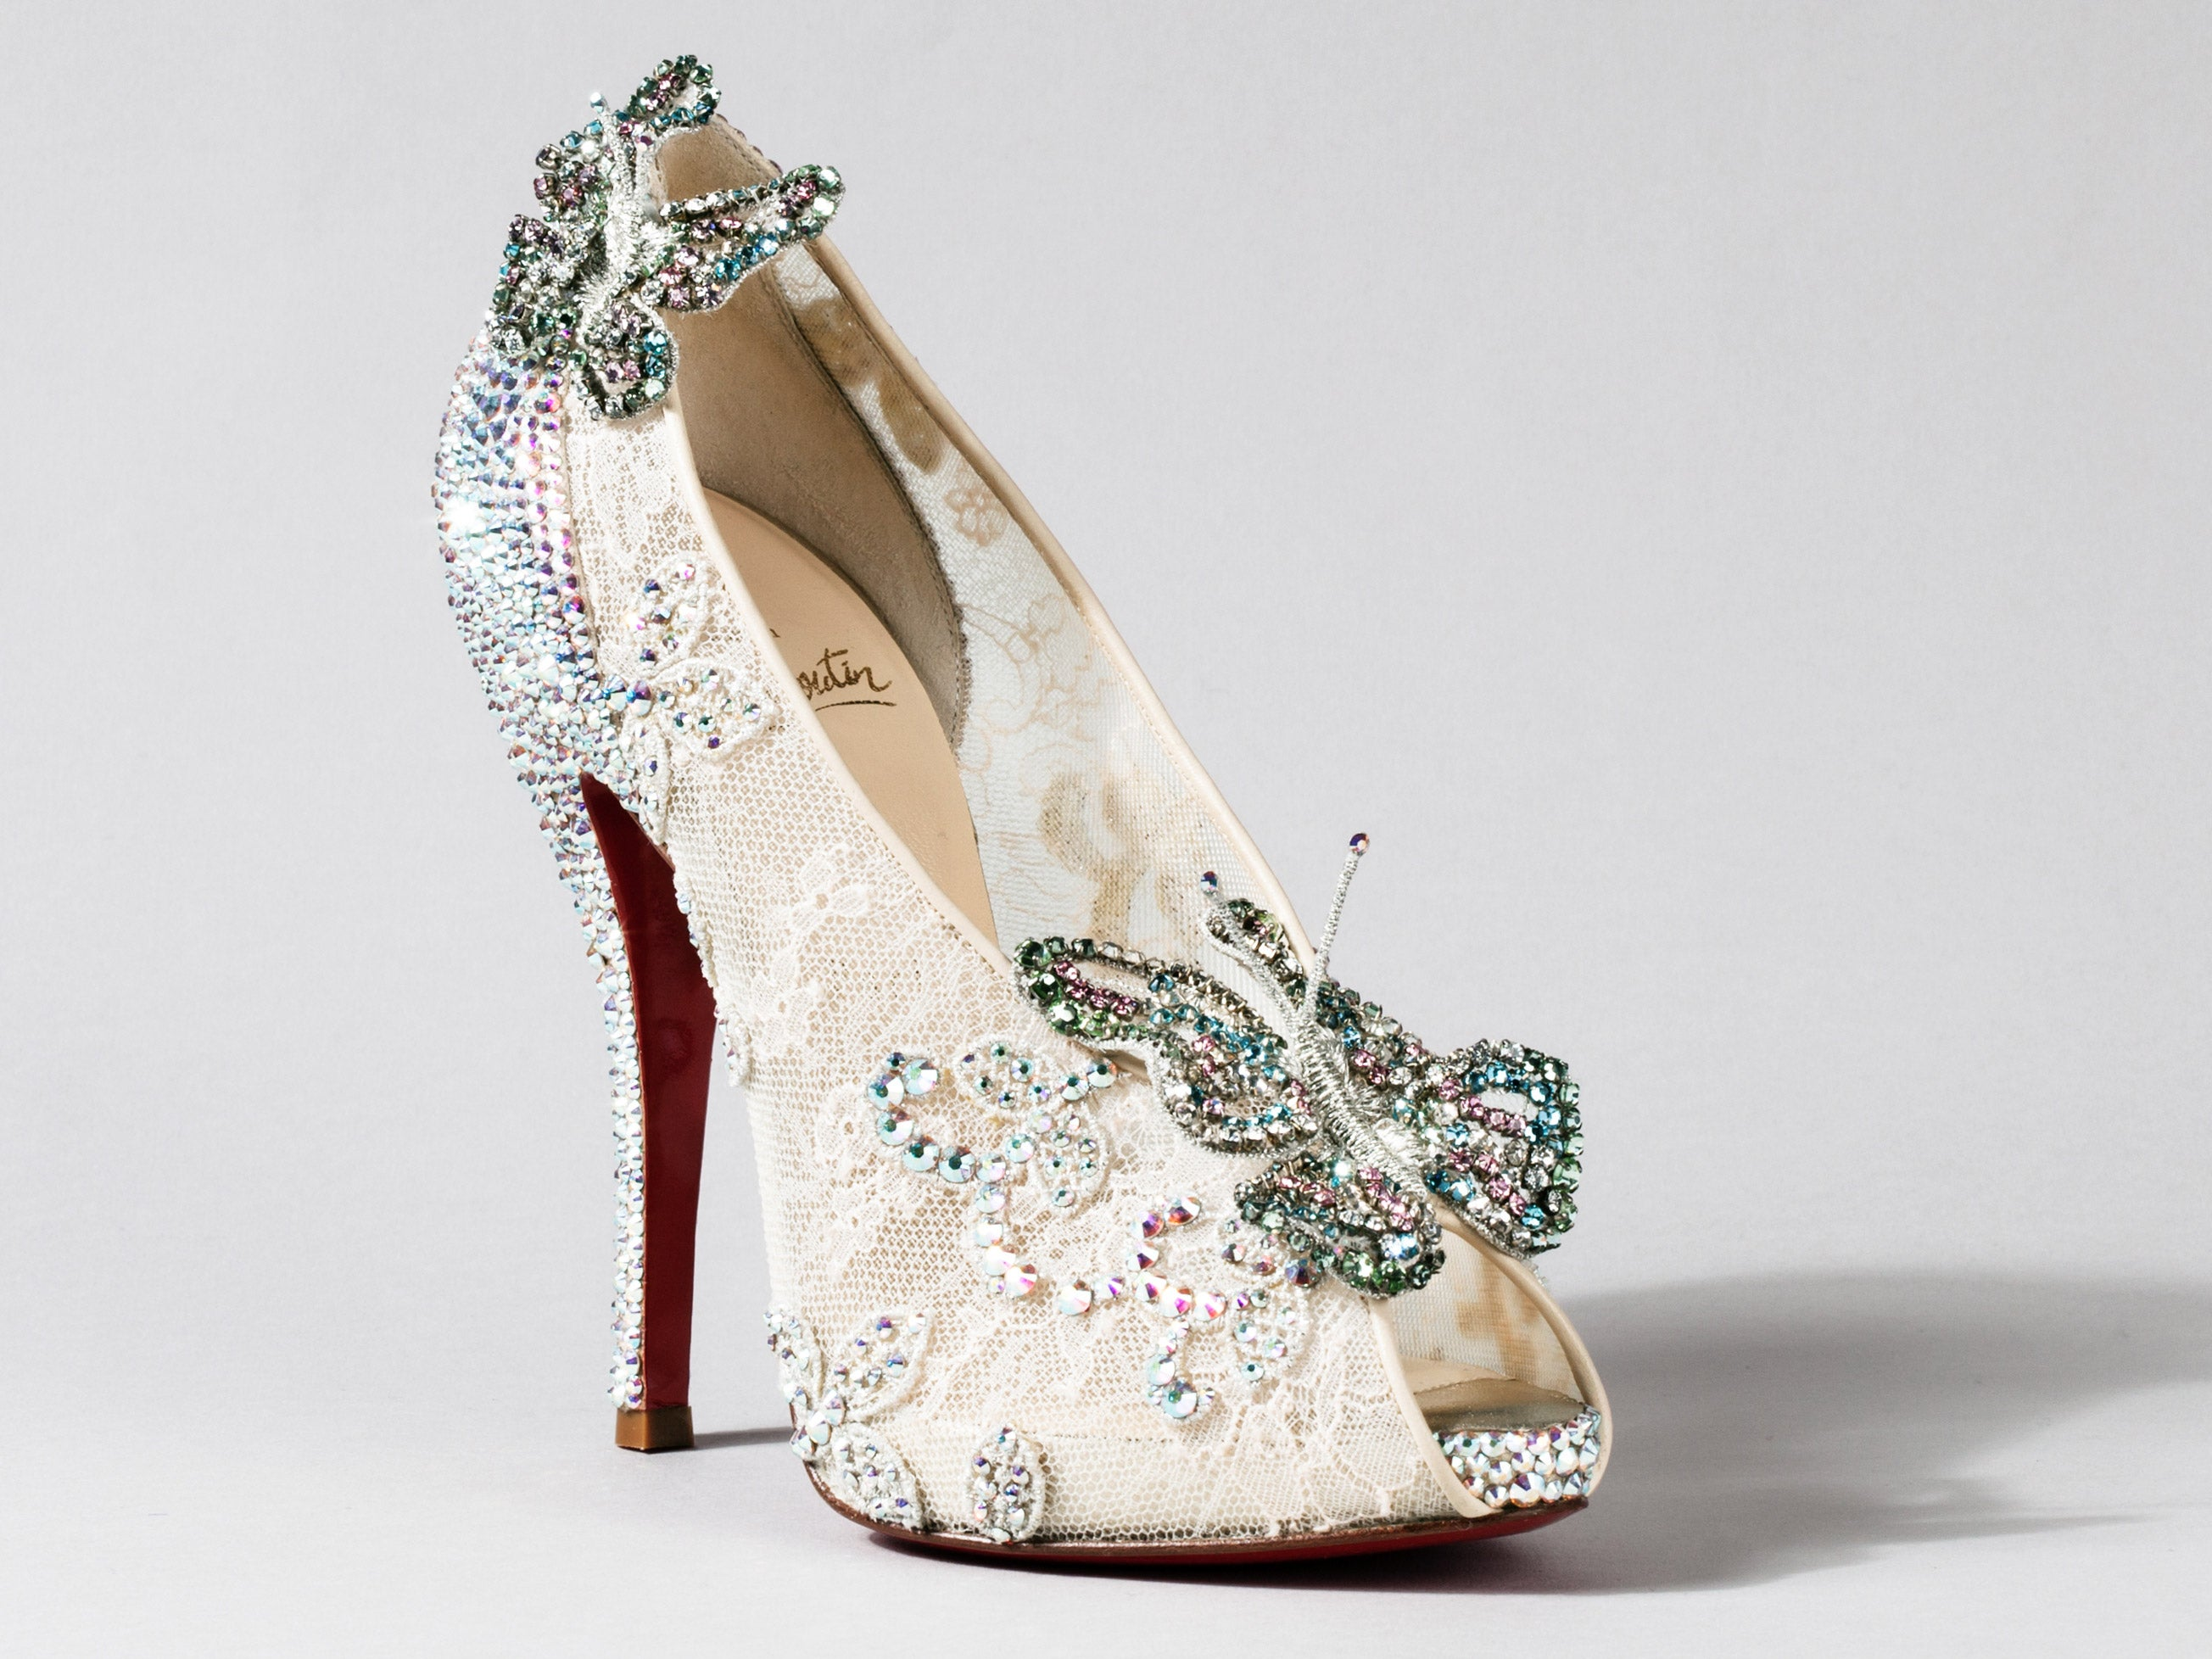 Disney unveils cinderella inspired designer shoes the Replica designer clothes uk